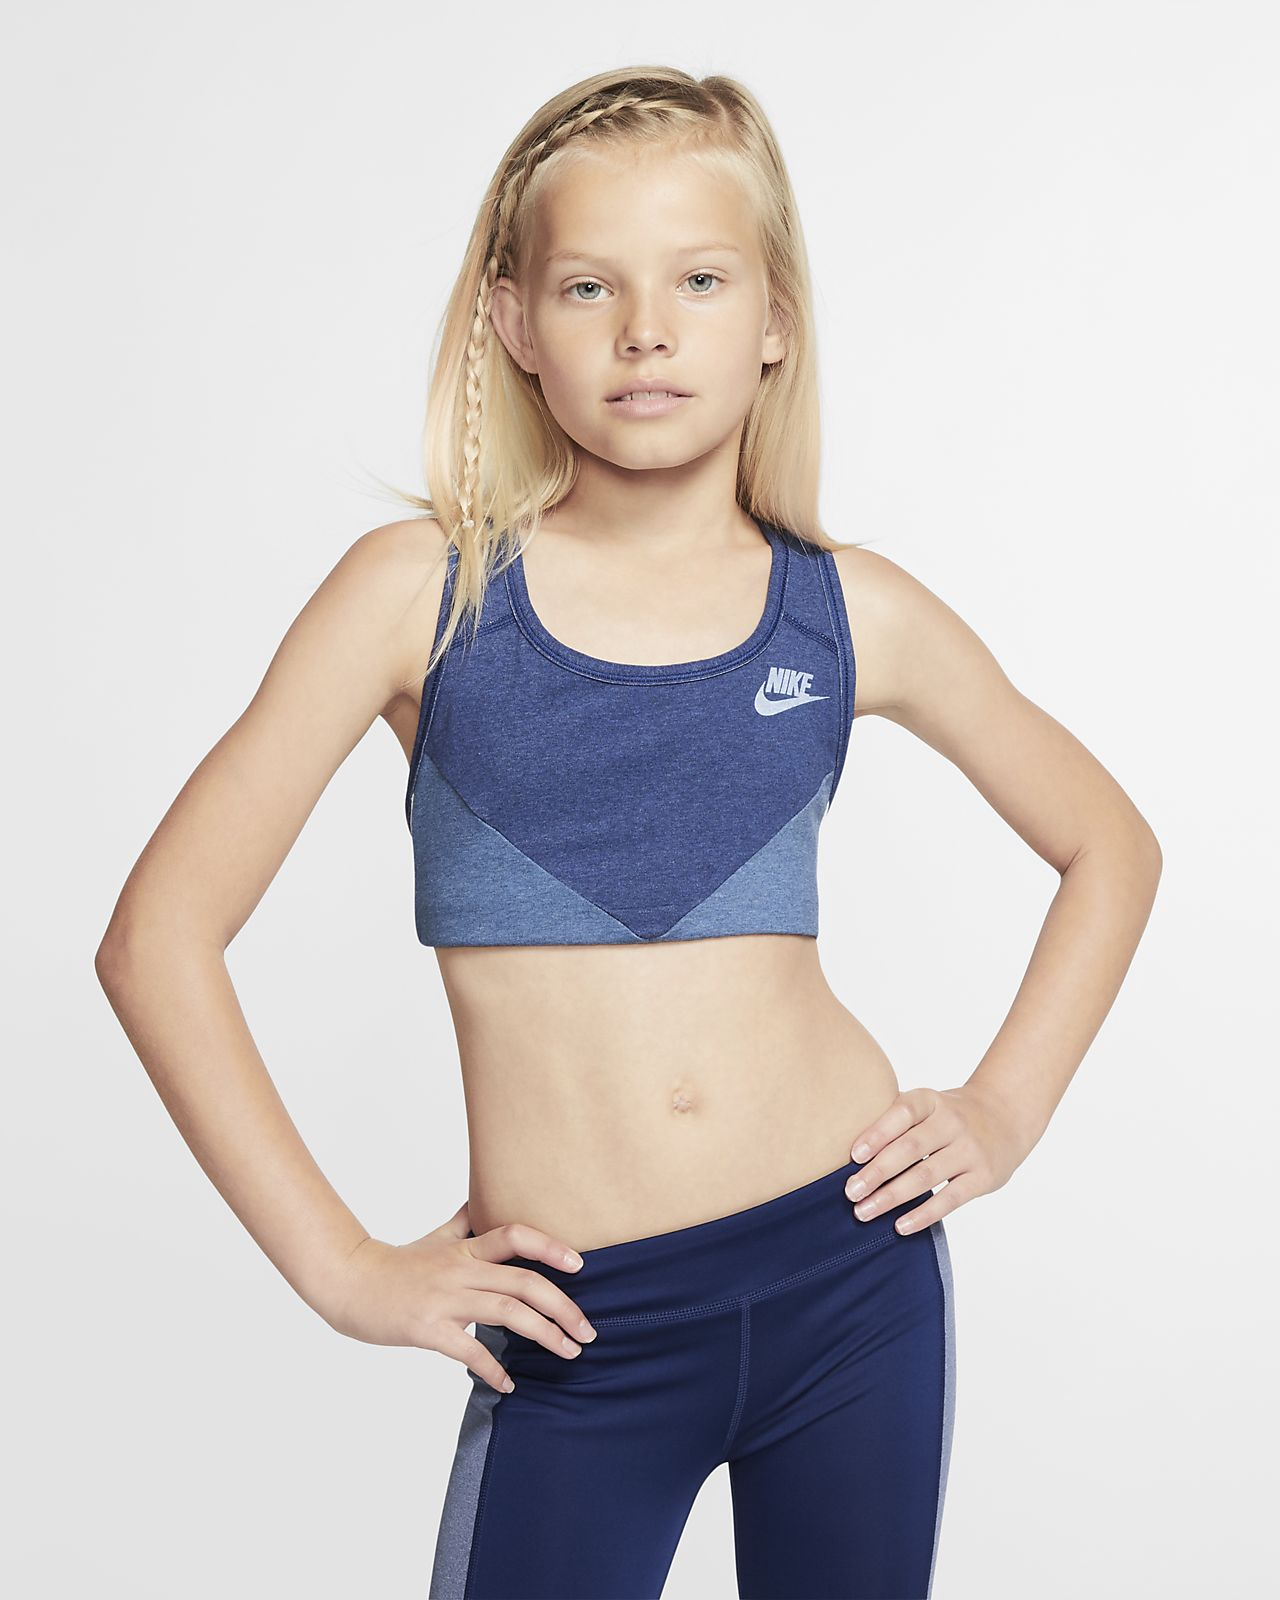 952ecfc240 Nike Girls' Sports Bra